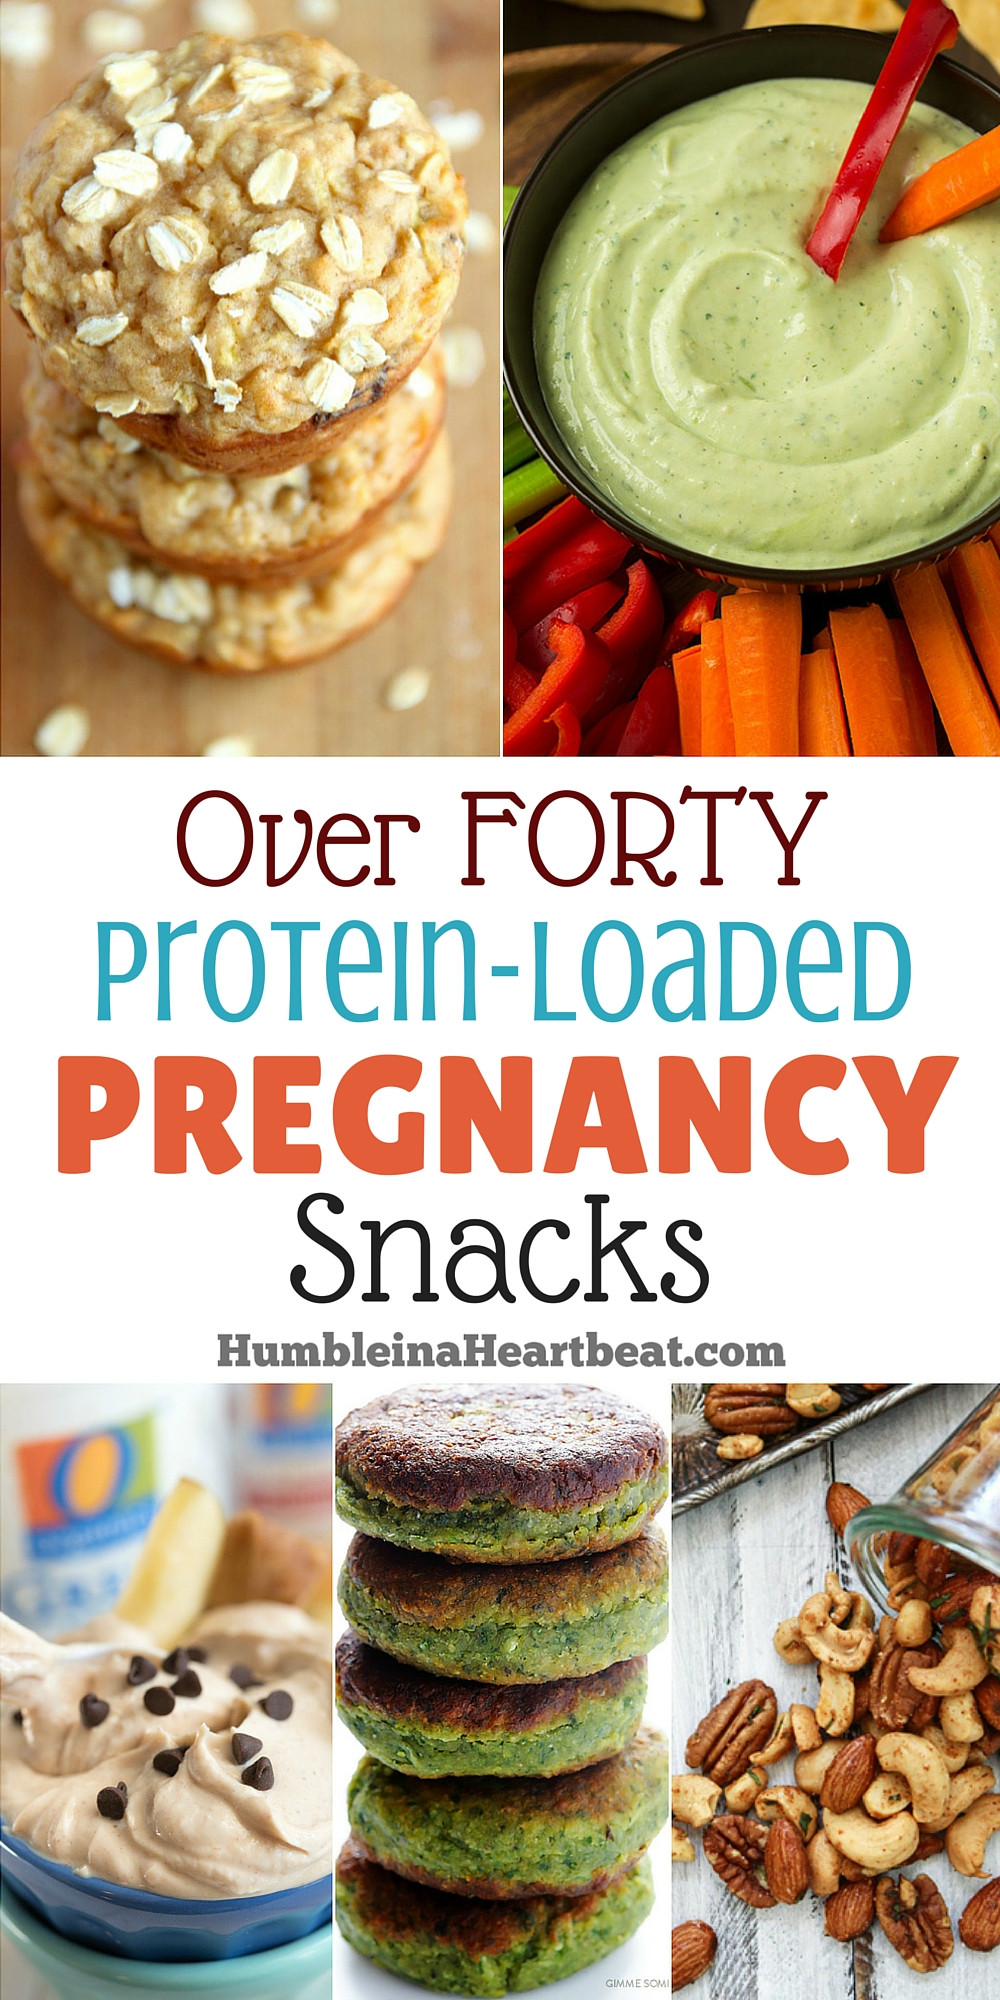 Healthy Snacks While Pregnant  40 Amazing Pregnancy Snacks with Tons of Protein